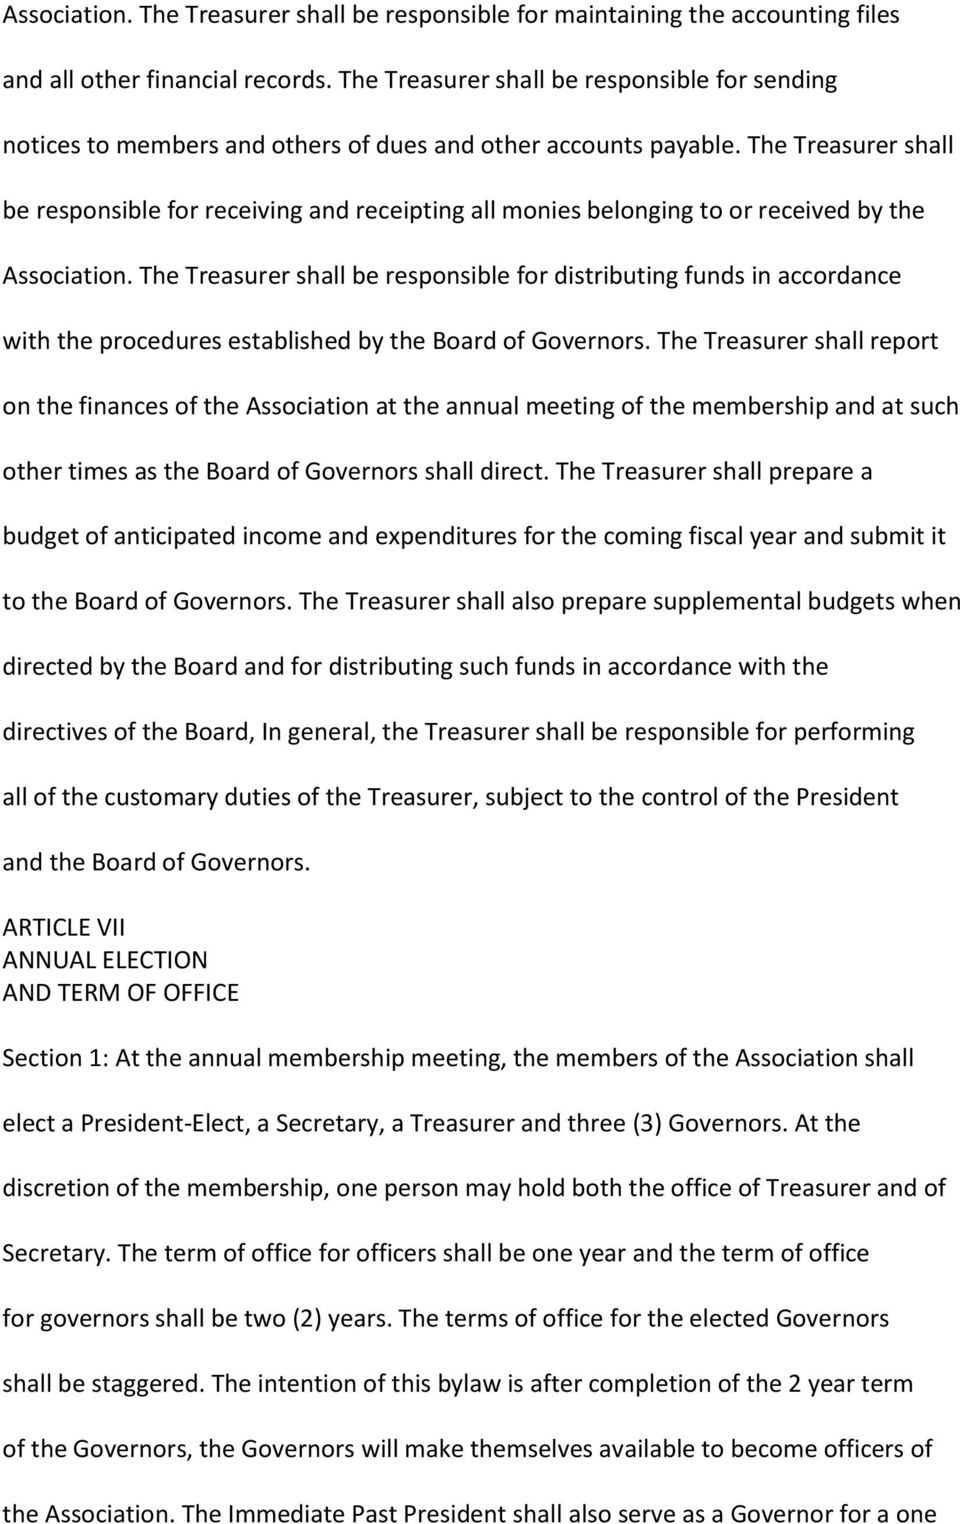 The Treasurer shall be responsible for receiving and receipting all monies belonging to or received by the Association.